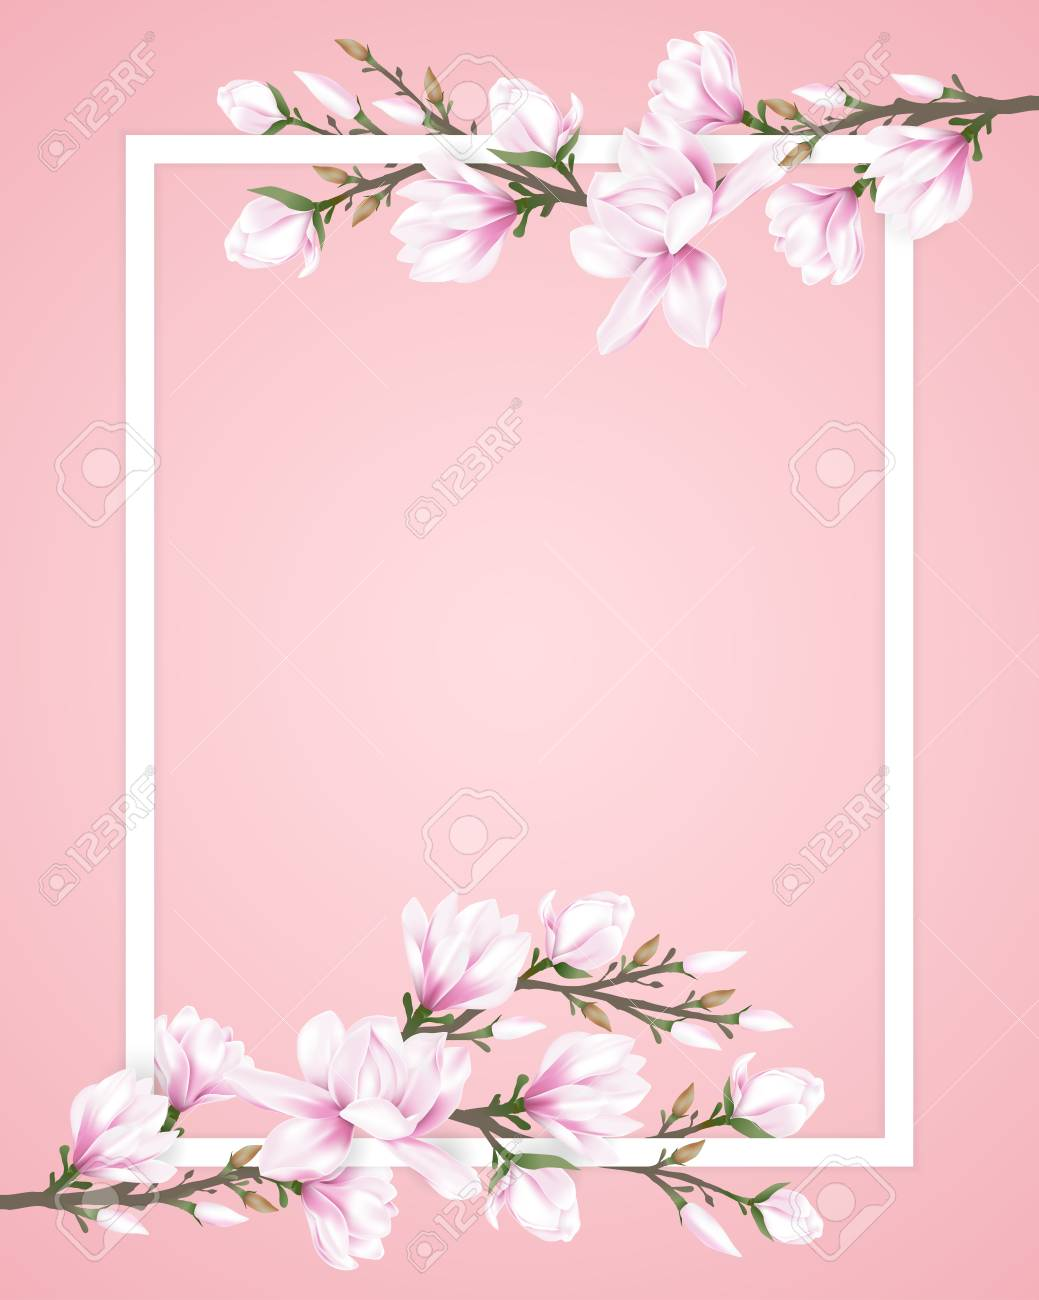 White Frame Decorated With Pink Magnolia Flower Branches On Sweet